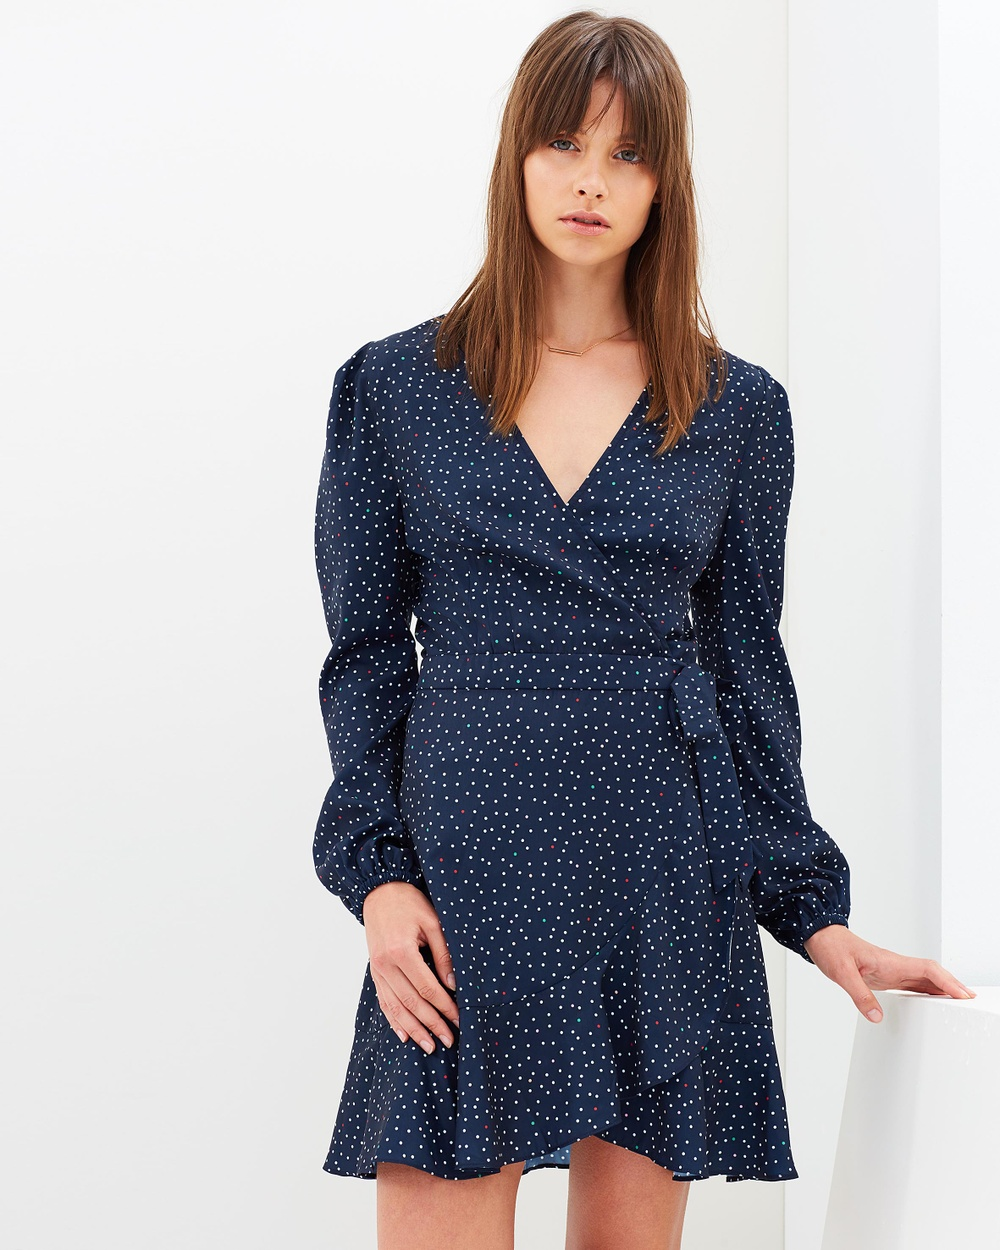 The Fifth Label Rooftop Polka Dot Long Sleeve Dress Printed Dresses Navy & White Rooftop Polka Dot Long Sleeve Dress